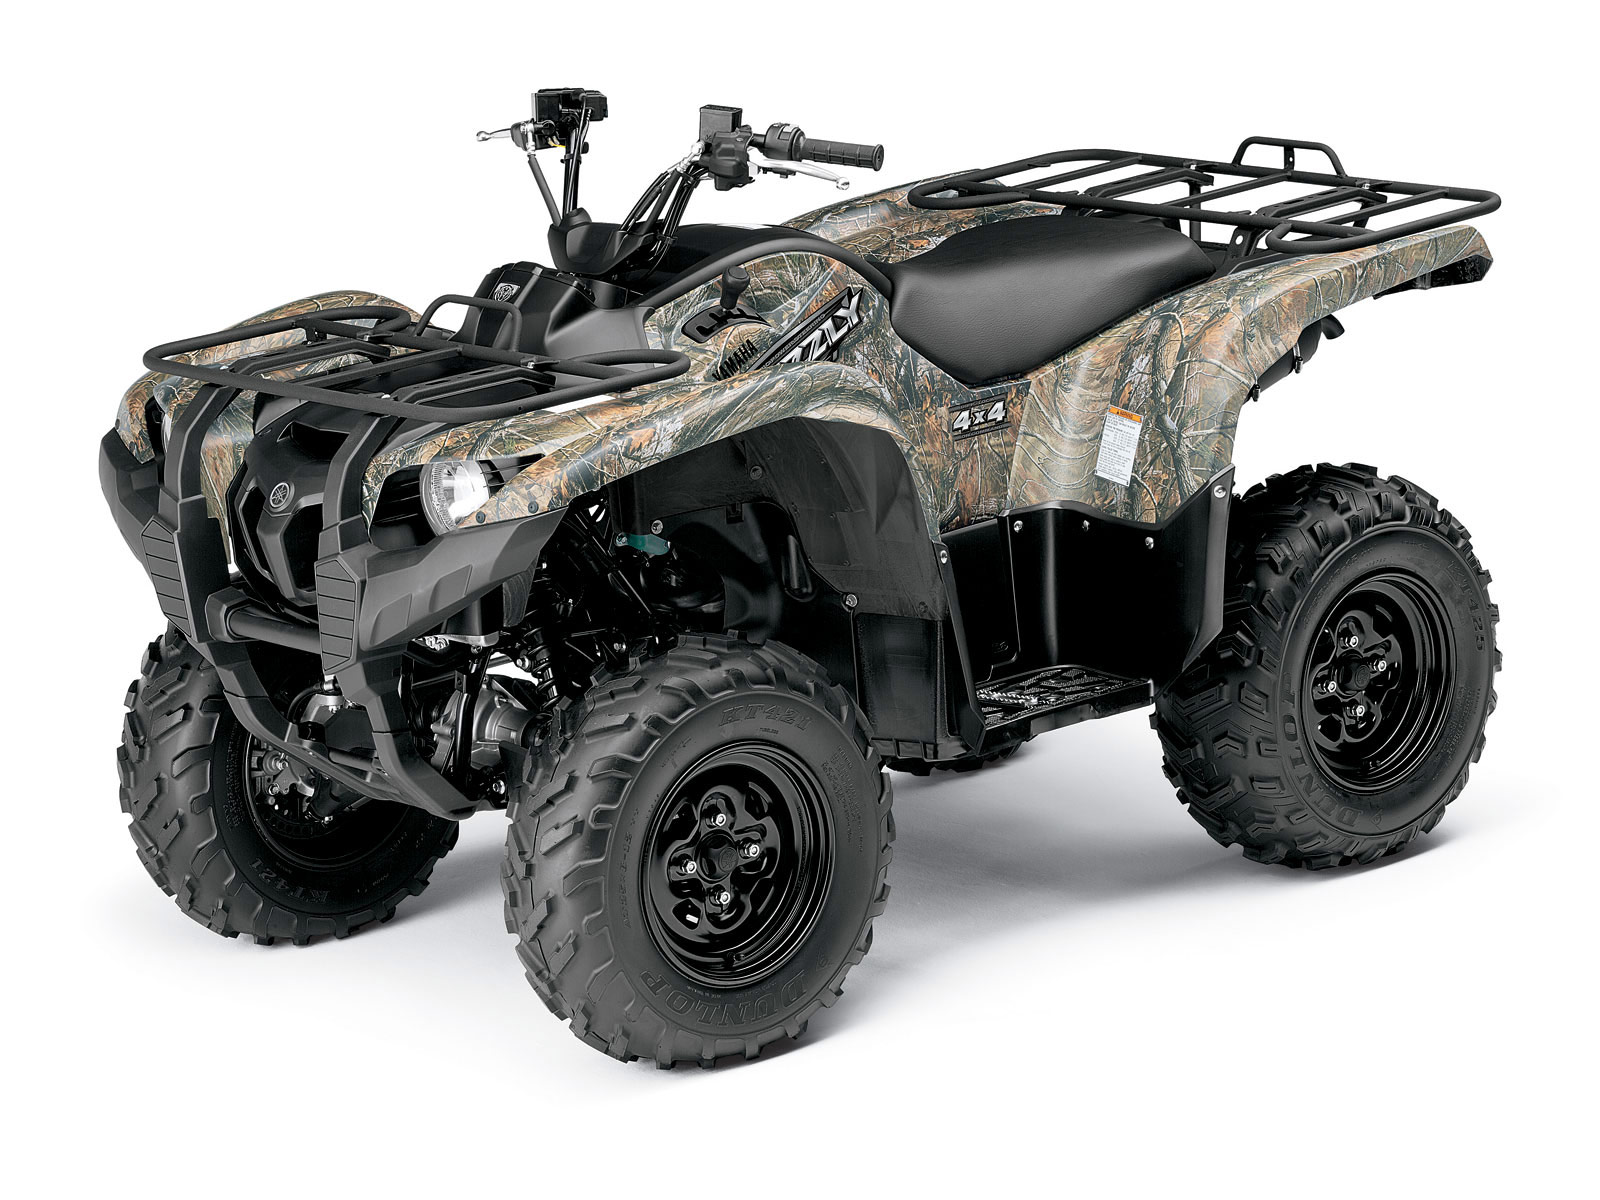 🔥 2009 yamaha grizzly 700 serial number location | YFM GRIZZLY 125